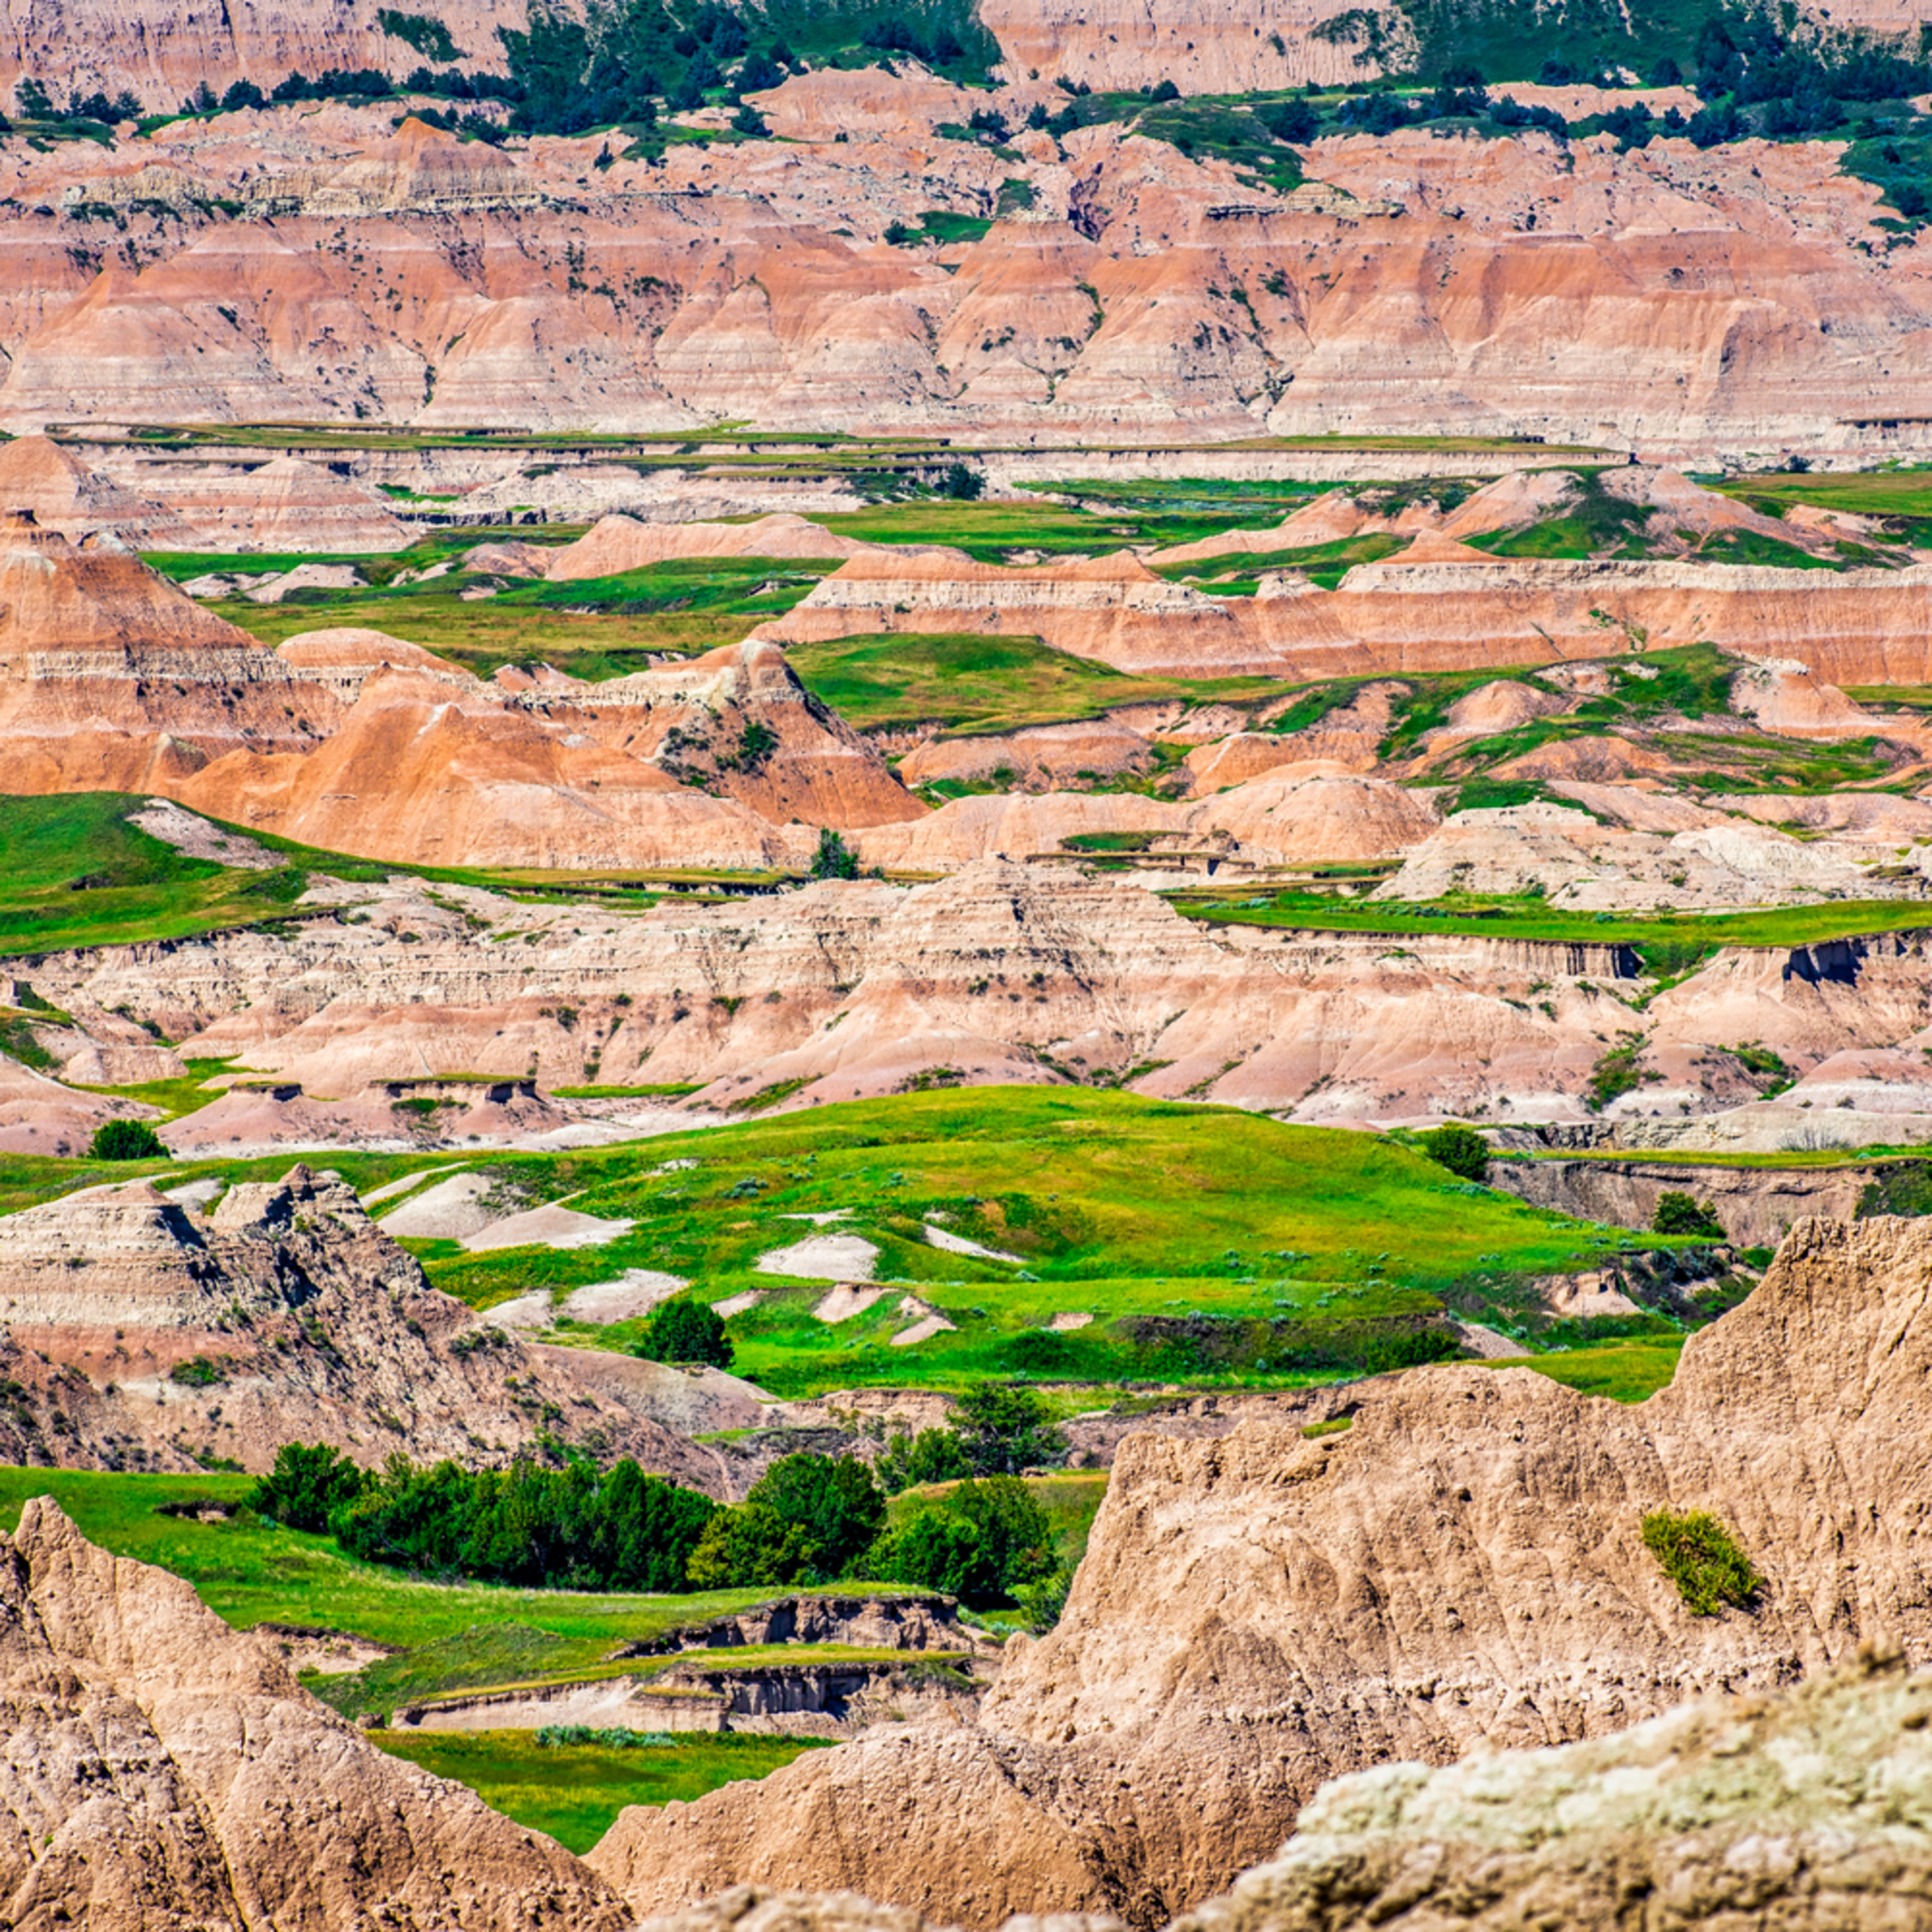 Andy crawford photography badlands national park 180626 003 vvoaw6